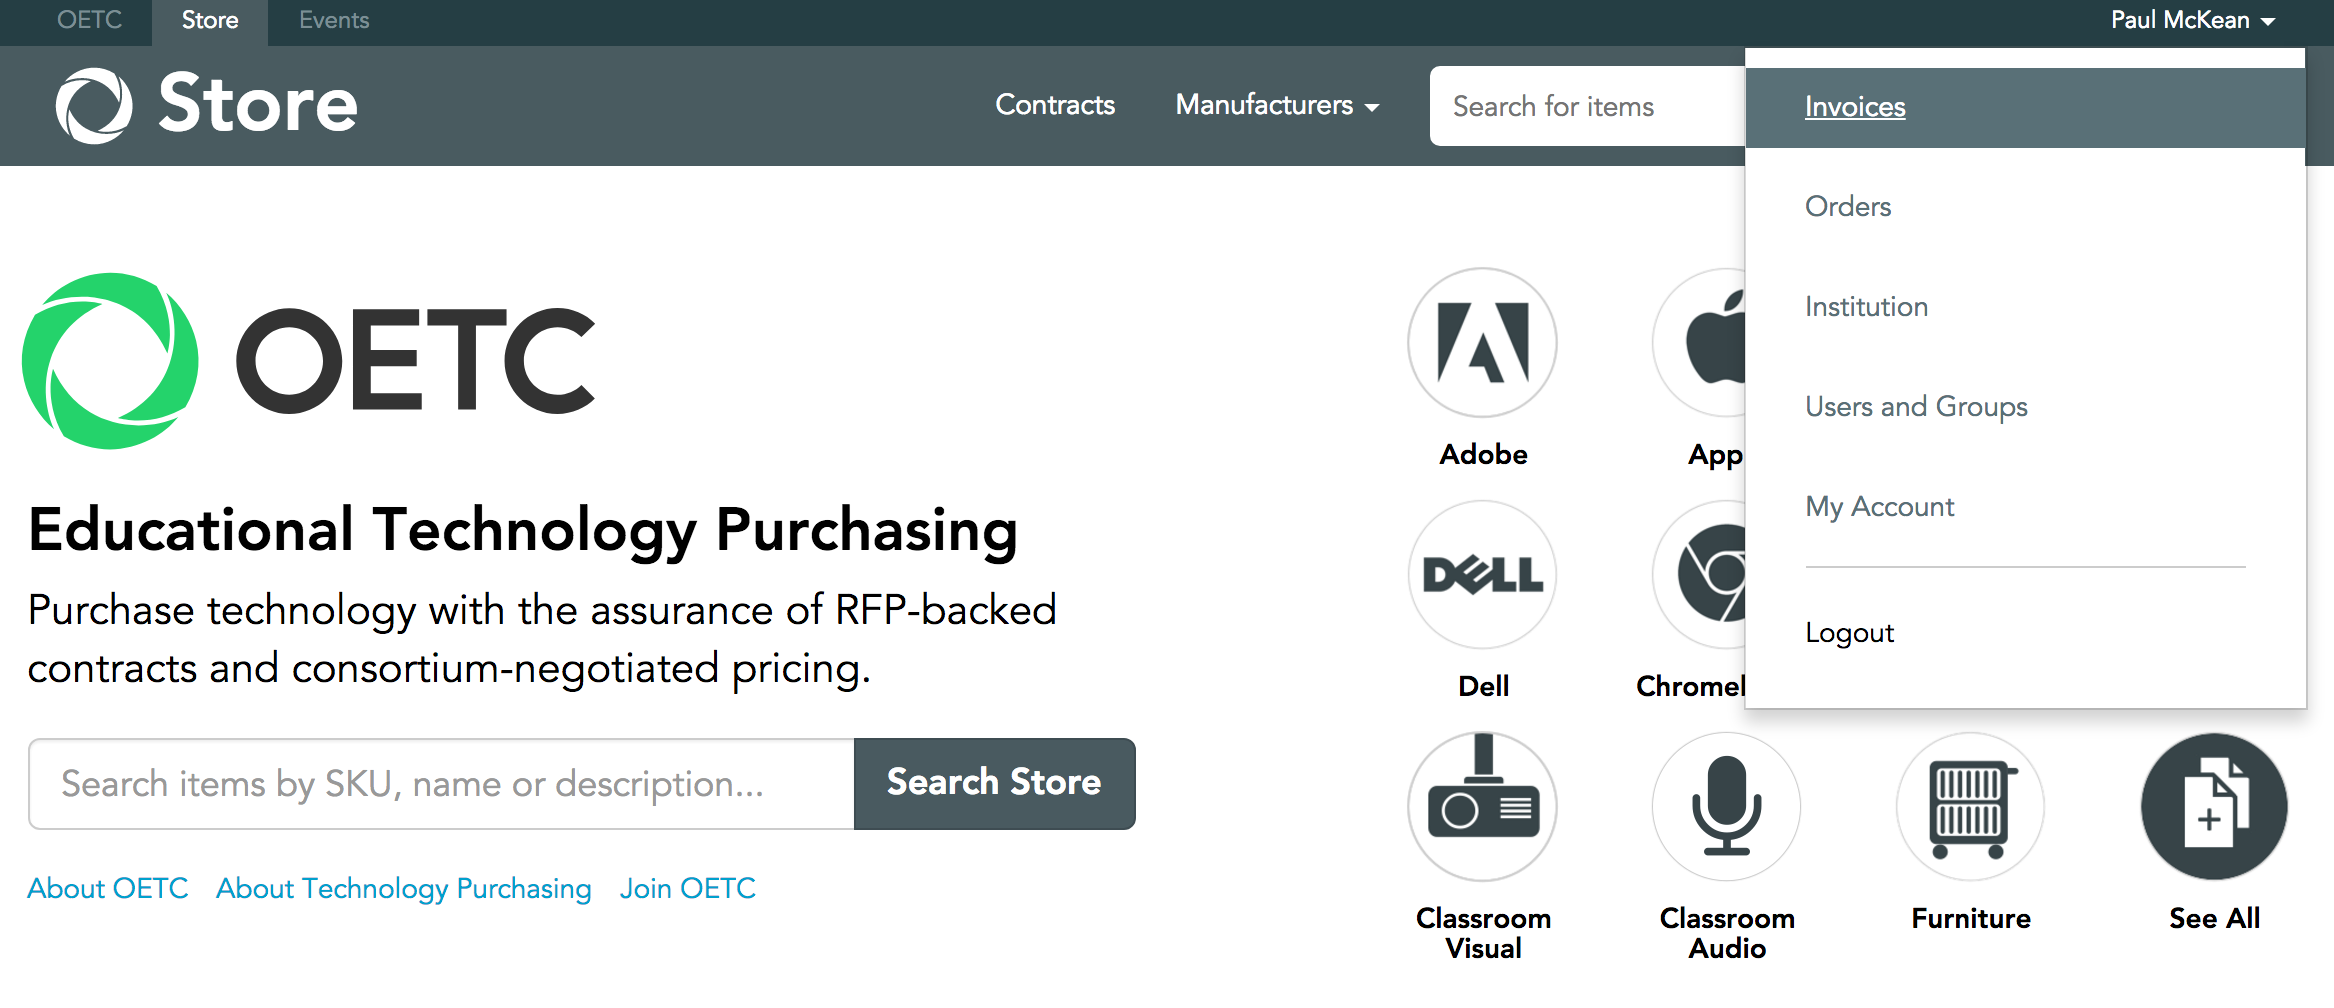 View your invoices on the OETC Store